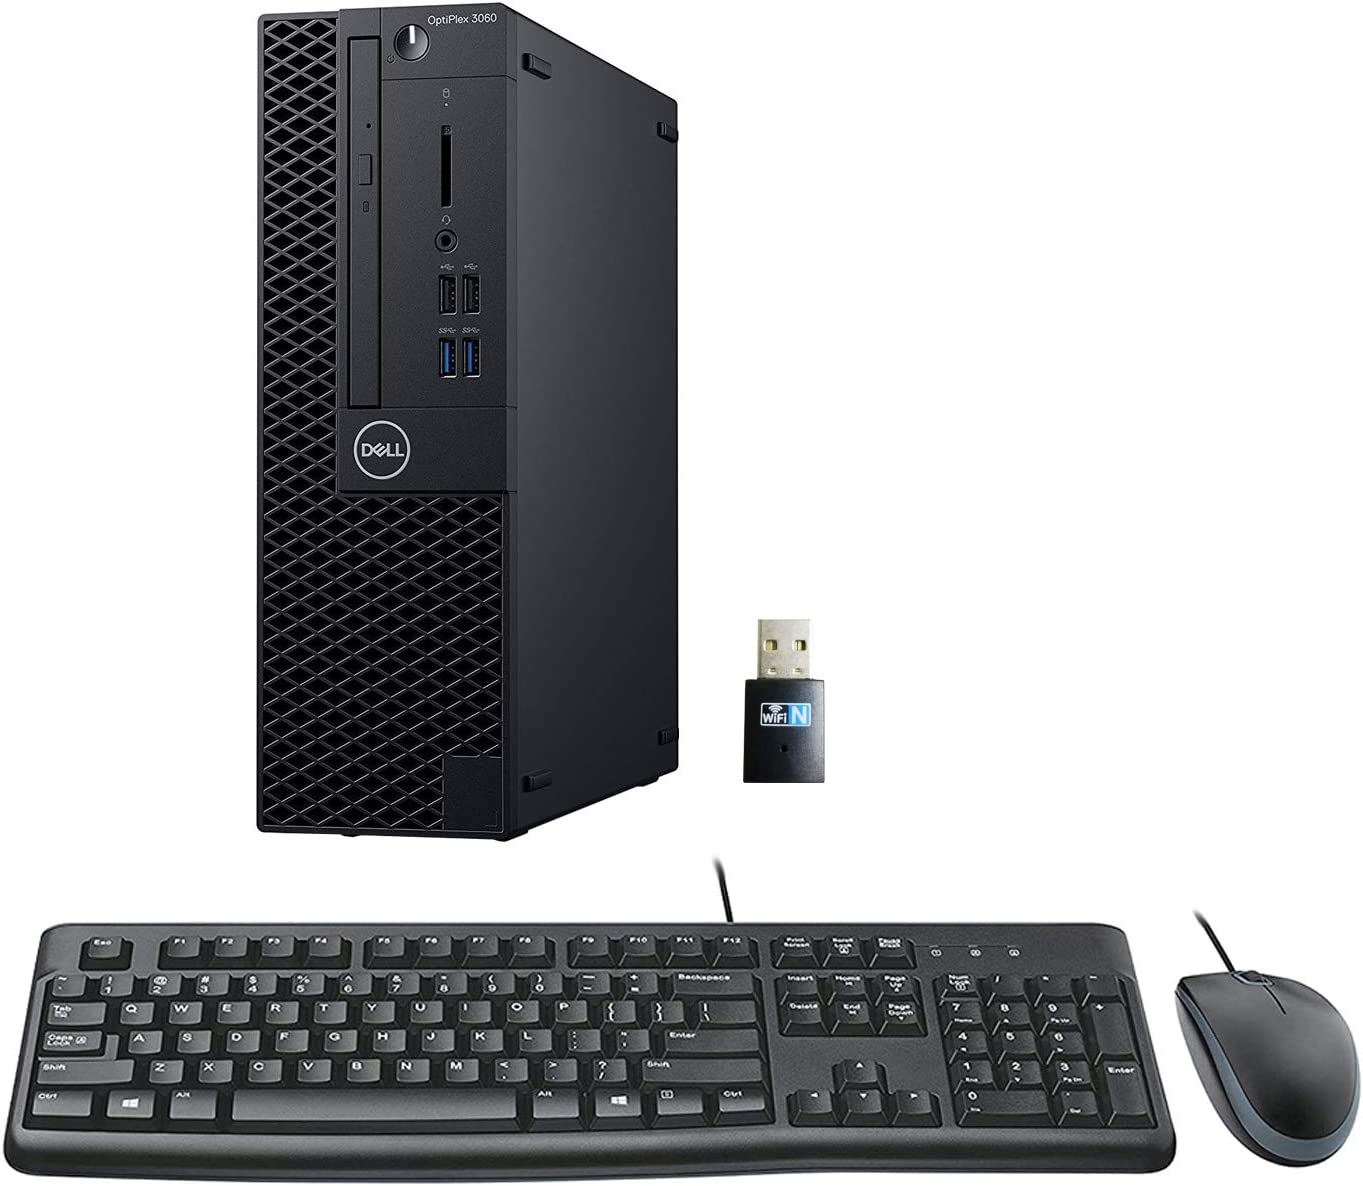 Dell Optiplex 3060 SFF Desktop PC Bundle with Keyboard, Mouse, Intel Core i5-8500 3.0GHz 6 Core (Hexa Core), 32GB DDR4 RAM, 1TB NVMe SSD, WiFi, Windows 10 Pro